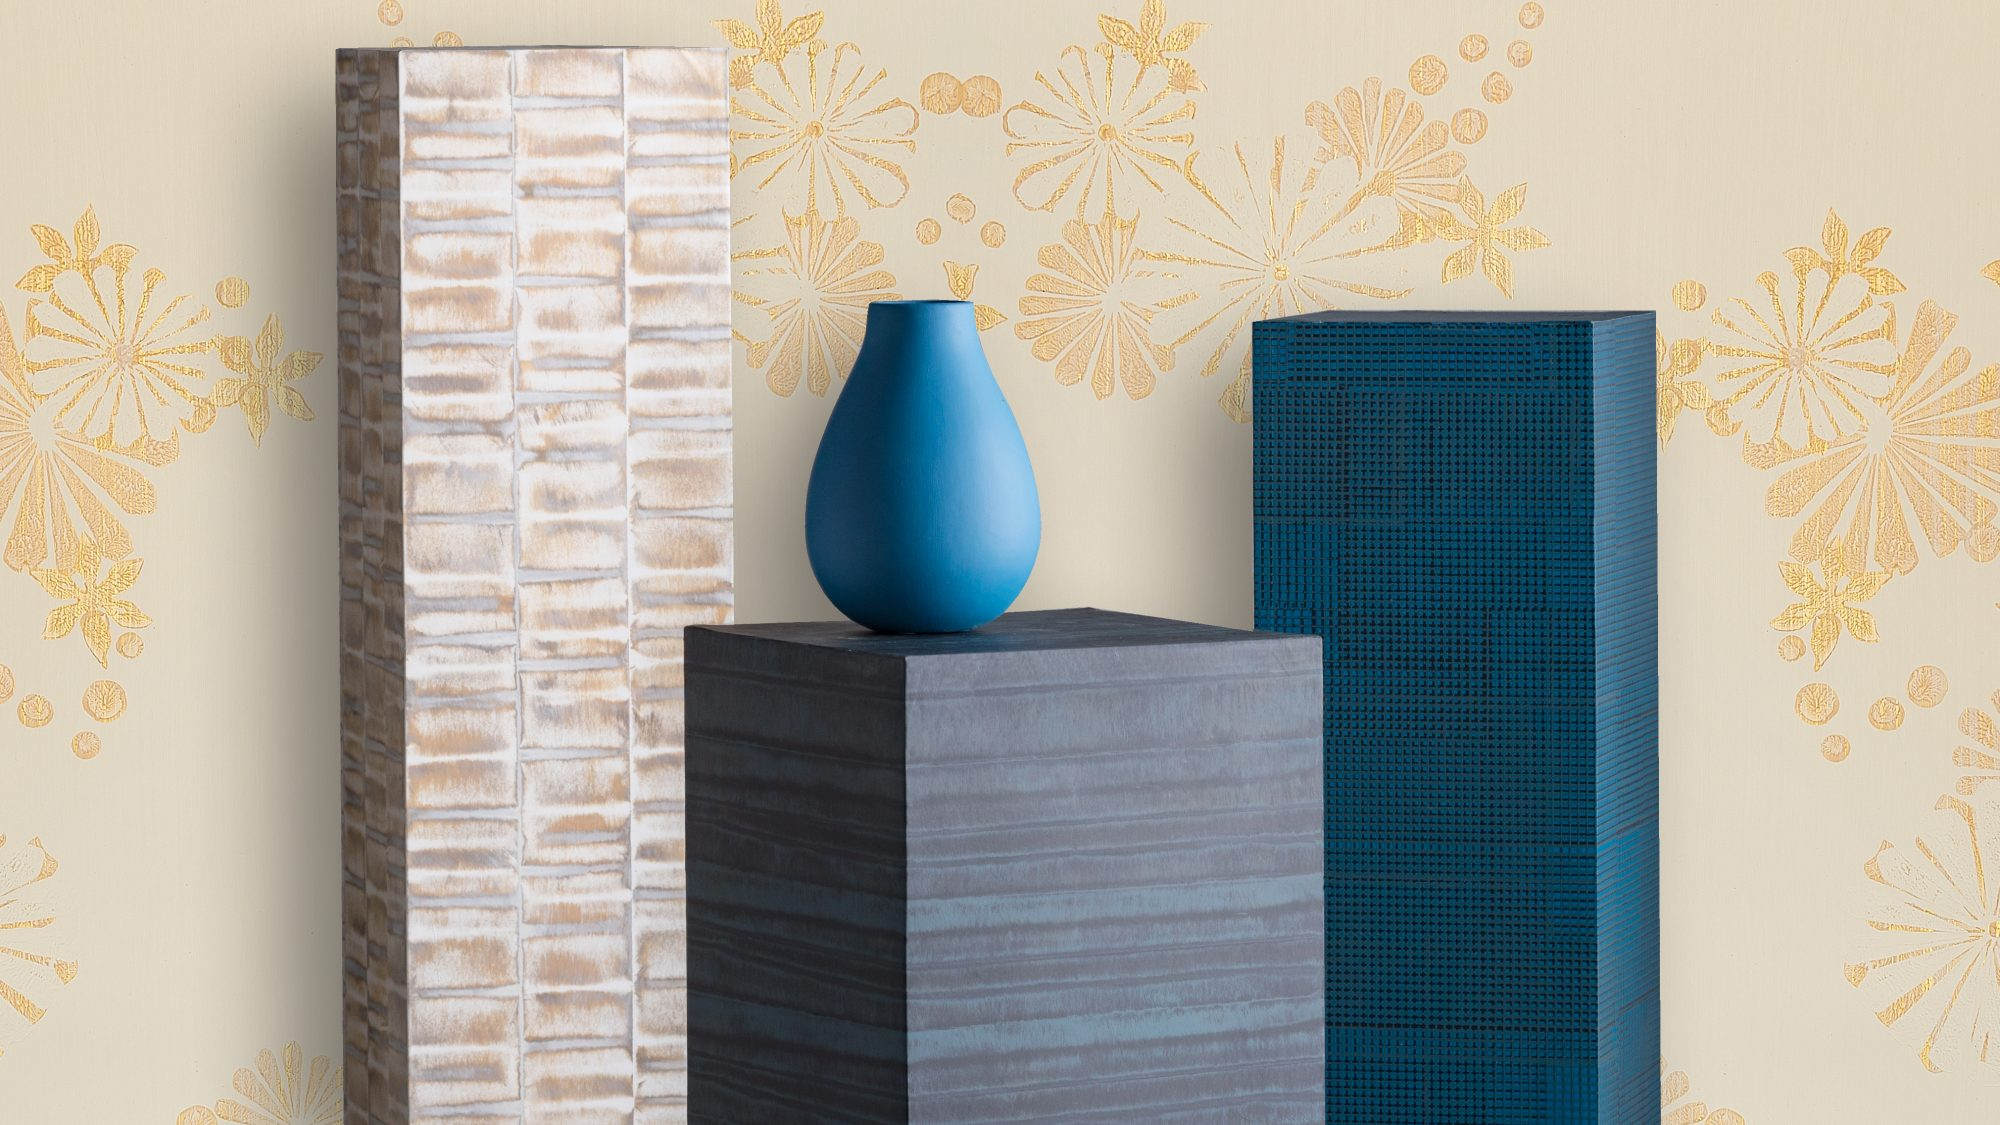 Benjamin Moore's New Hand-Painted Wallpaper Is on Point for Spring